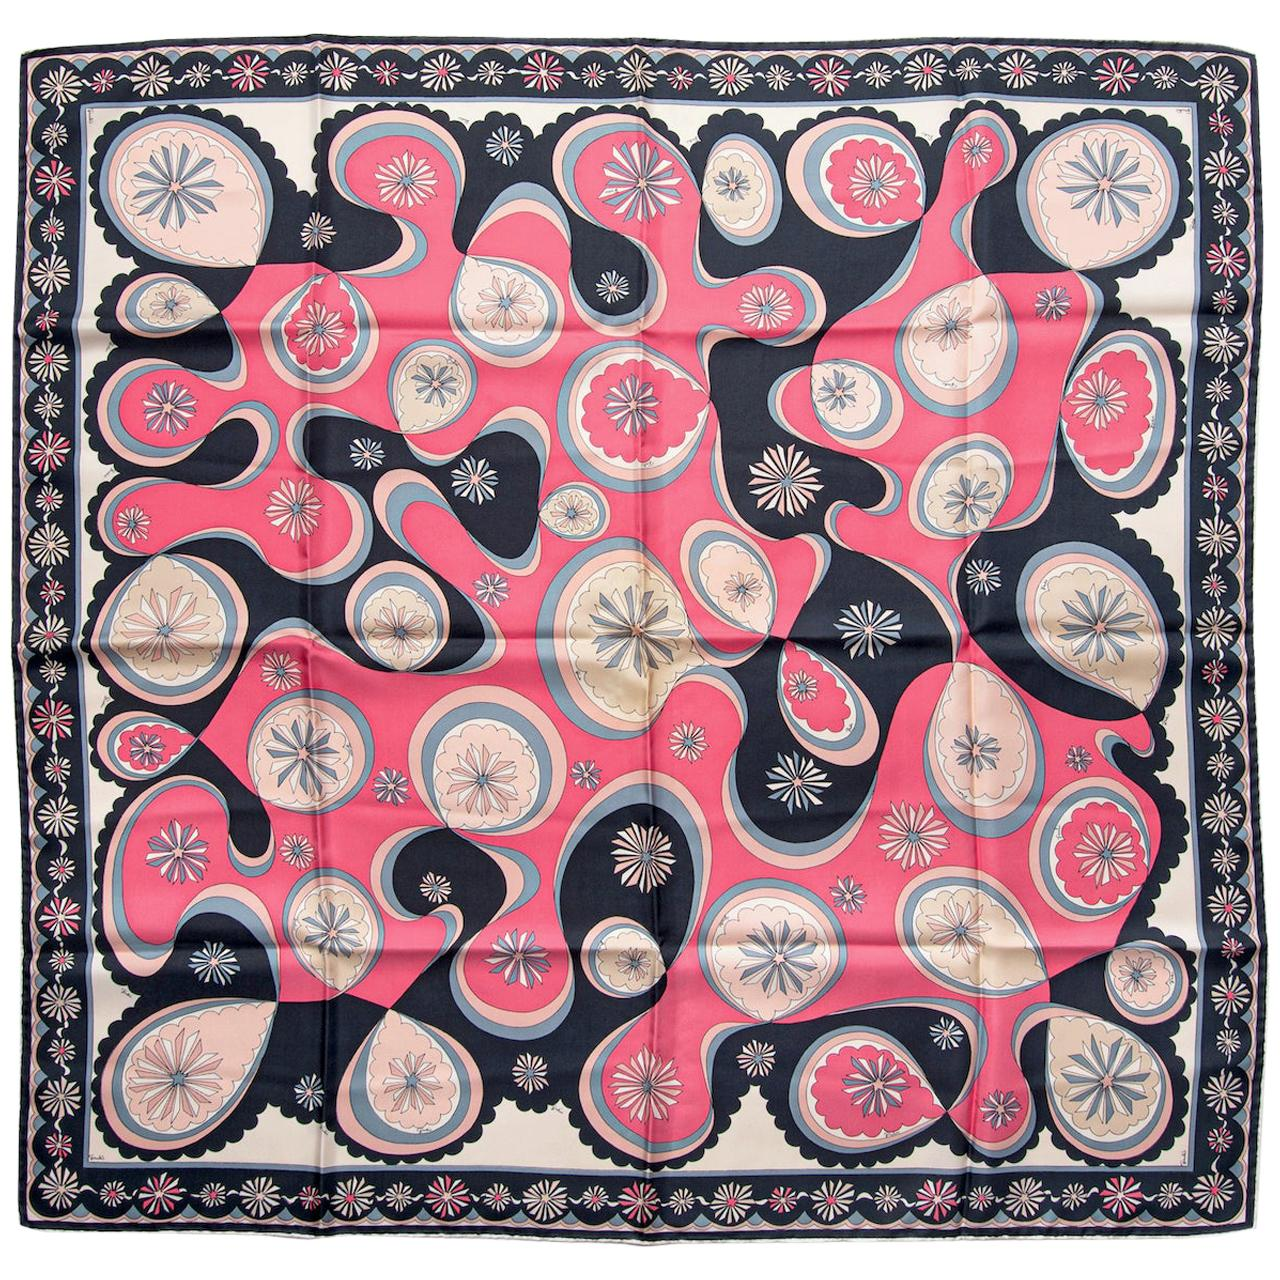 EMILIO PUCCI Signature Floral Print Pink & Black Silk Twill Scarf, early 1970s